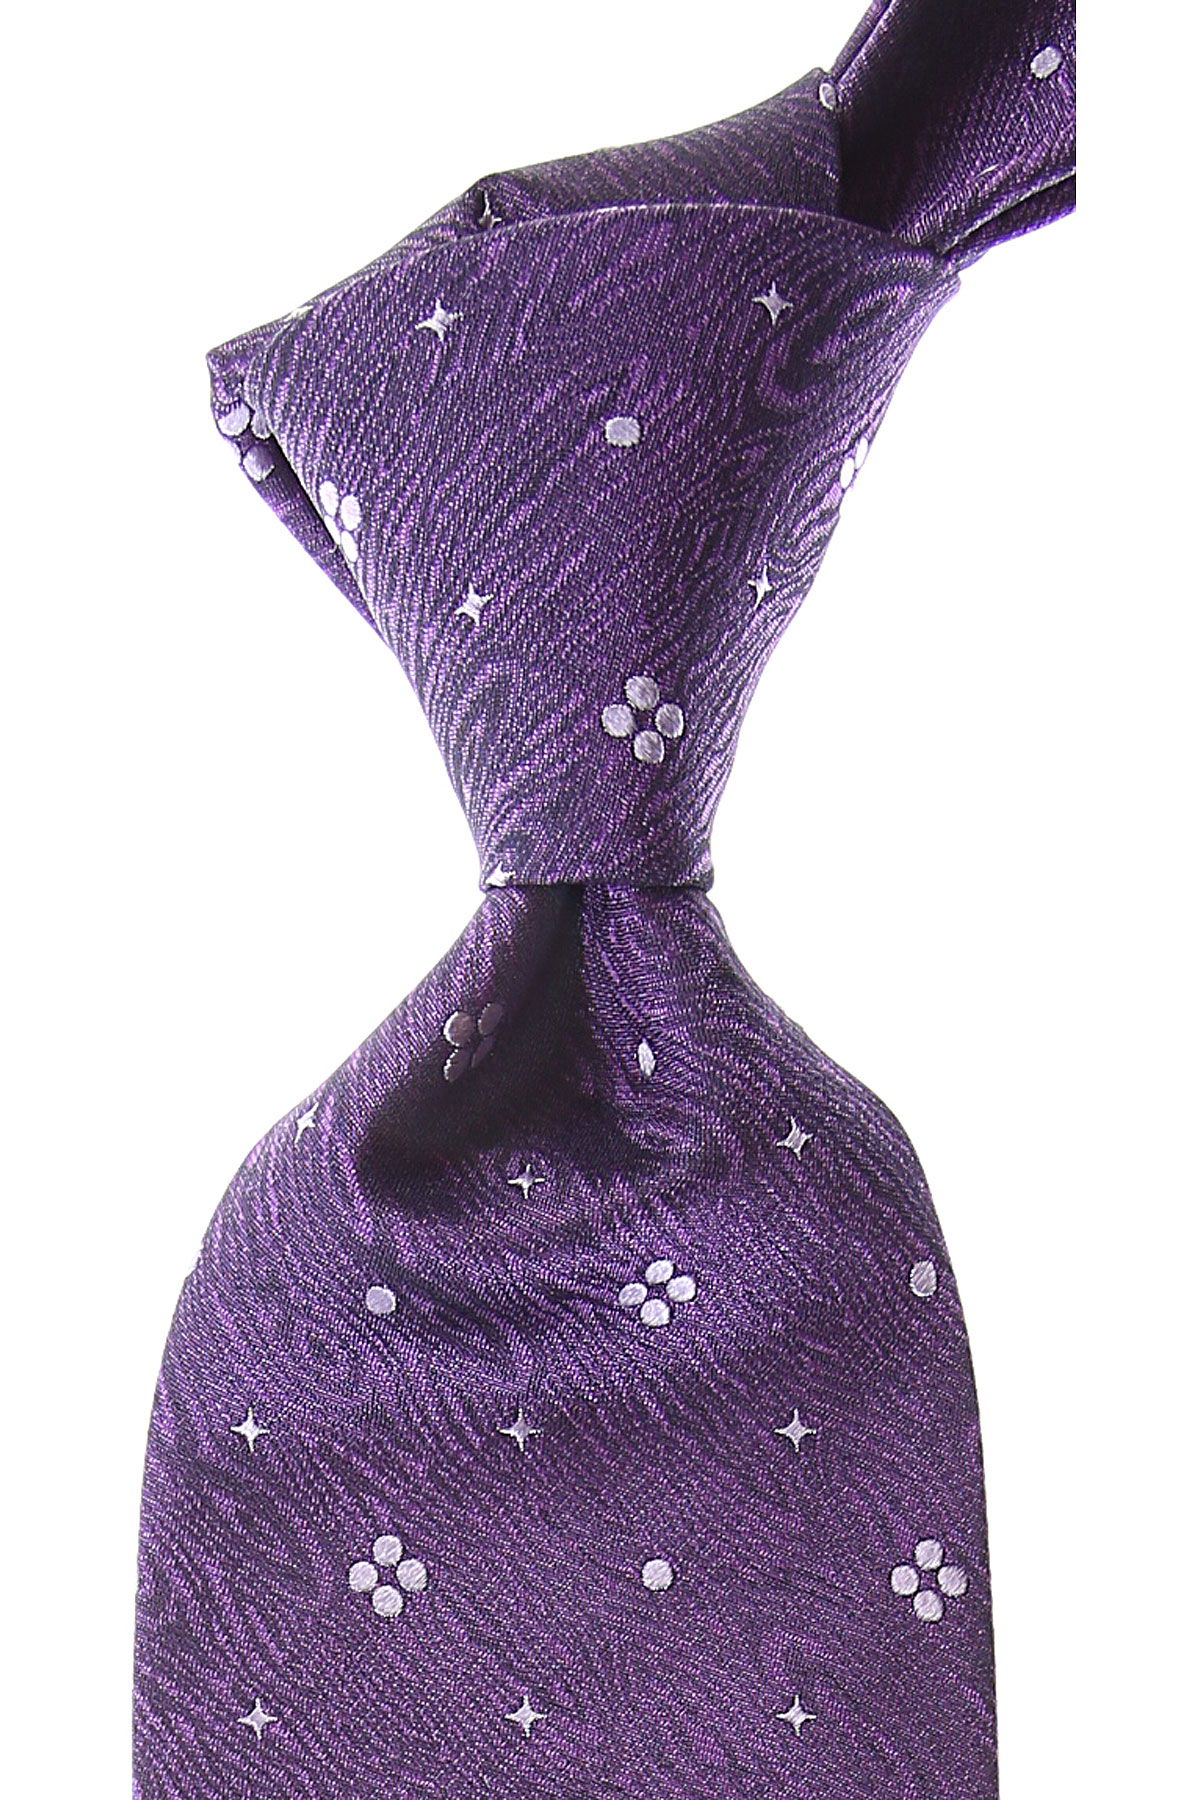 Gianni_Versace_Ties_On_Sale_Shaded_Violet_Silk_2019